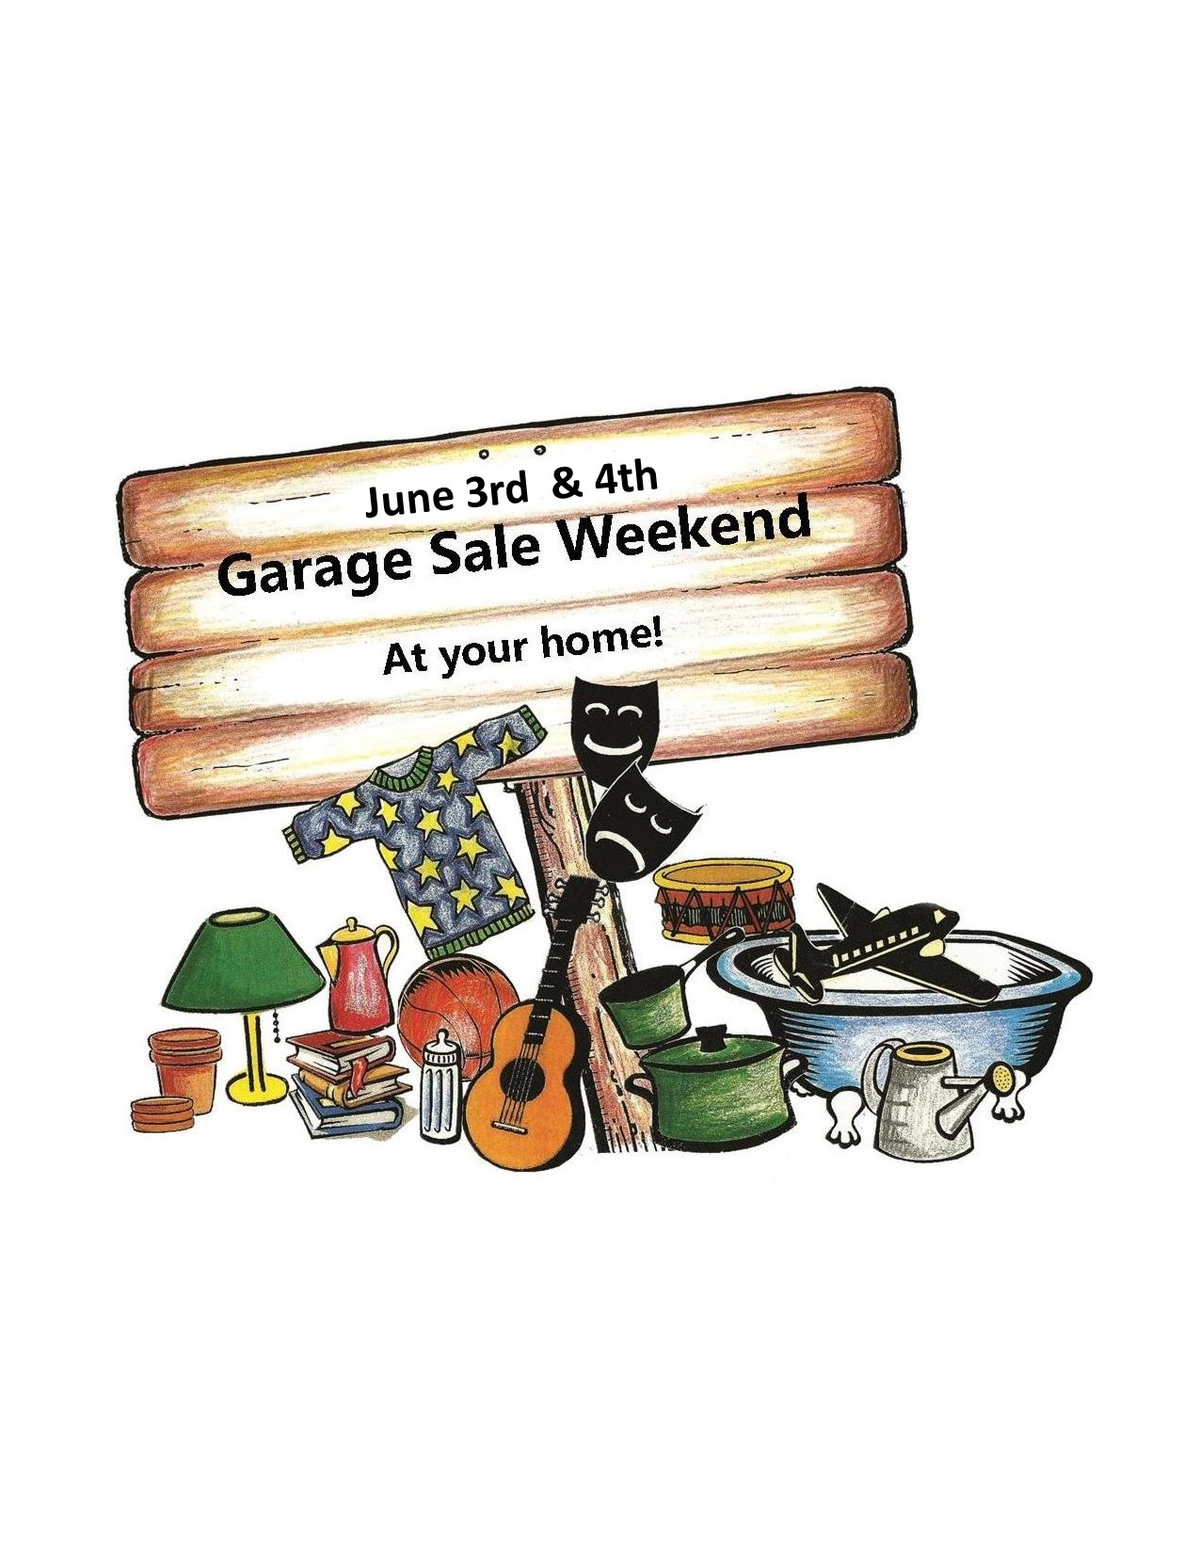 Register To Host Garage Sale In Santa Cruz Annual Event Santa Cruz - Garage sale treasure map